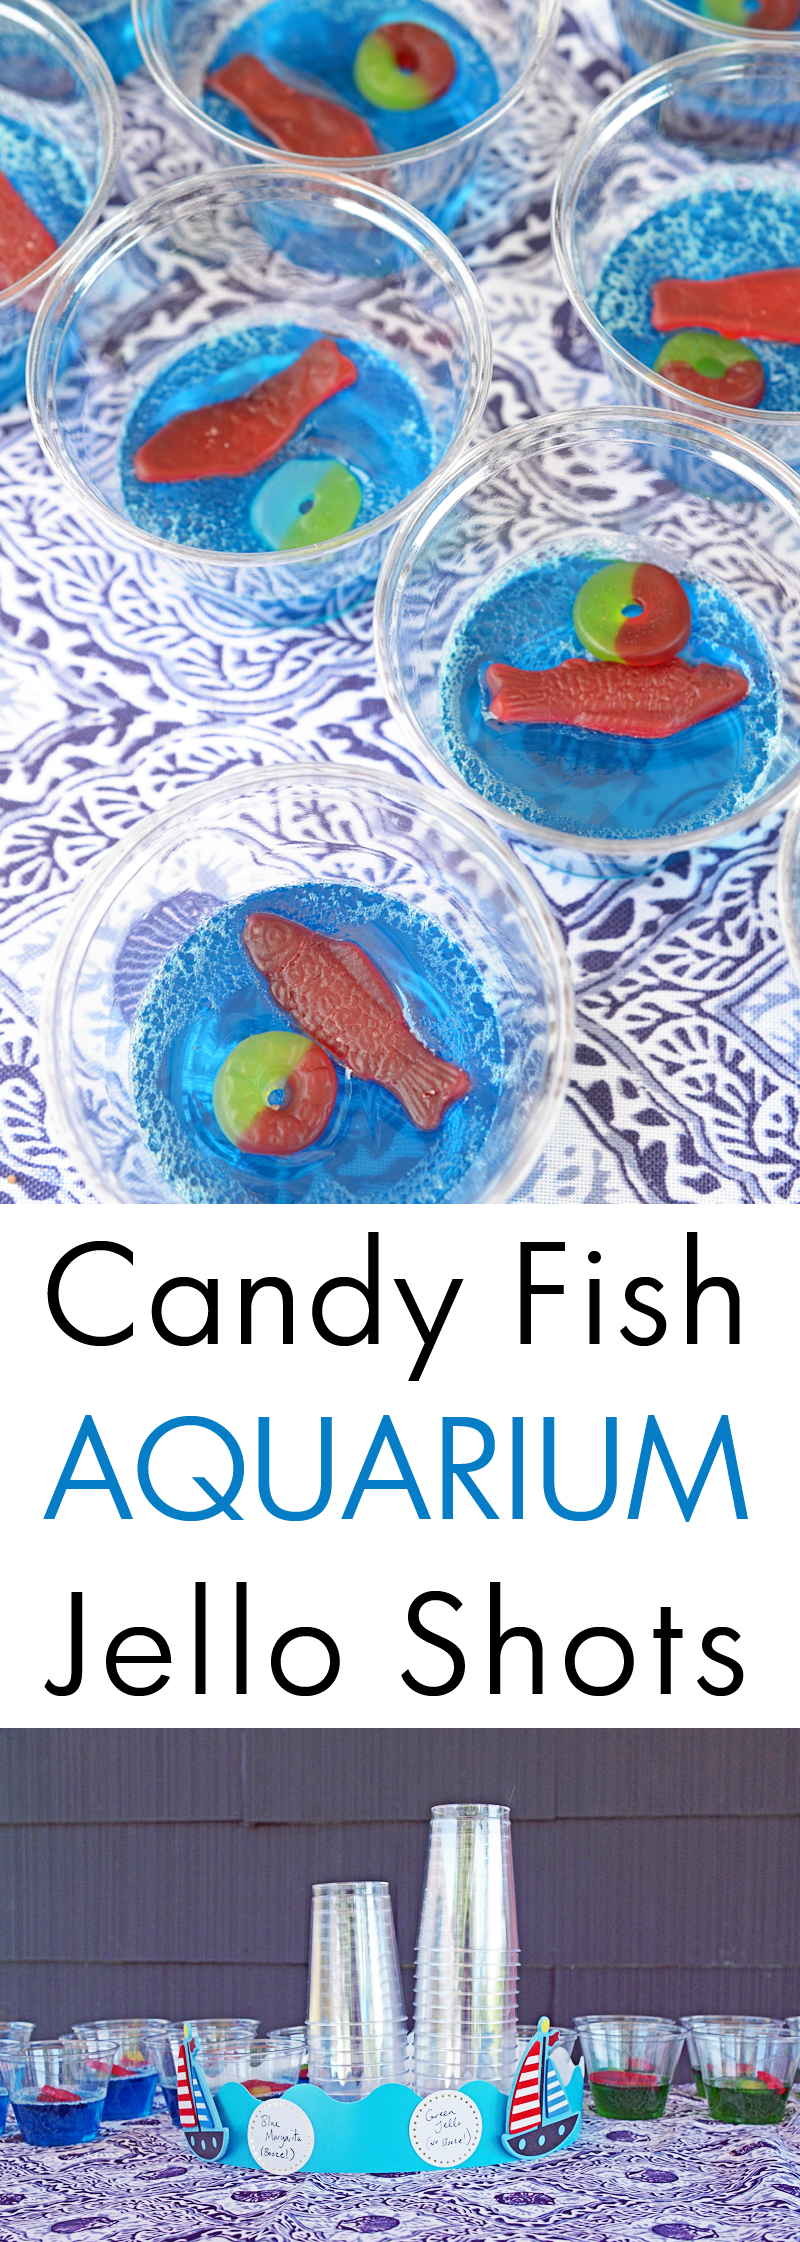 Candy Fish Aquarium Jello Shots